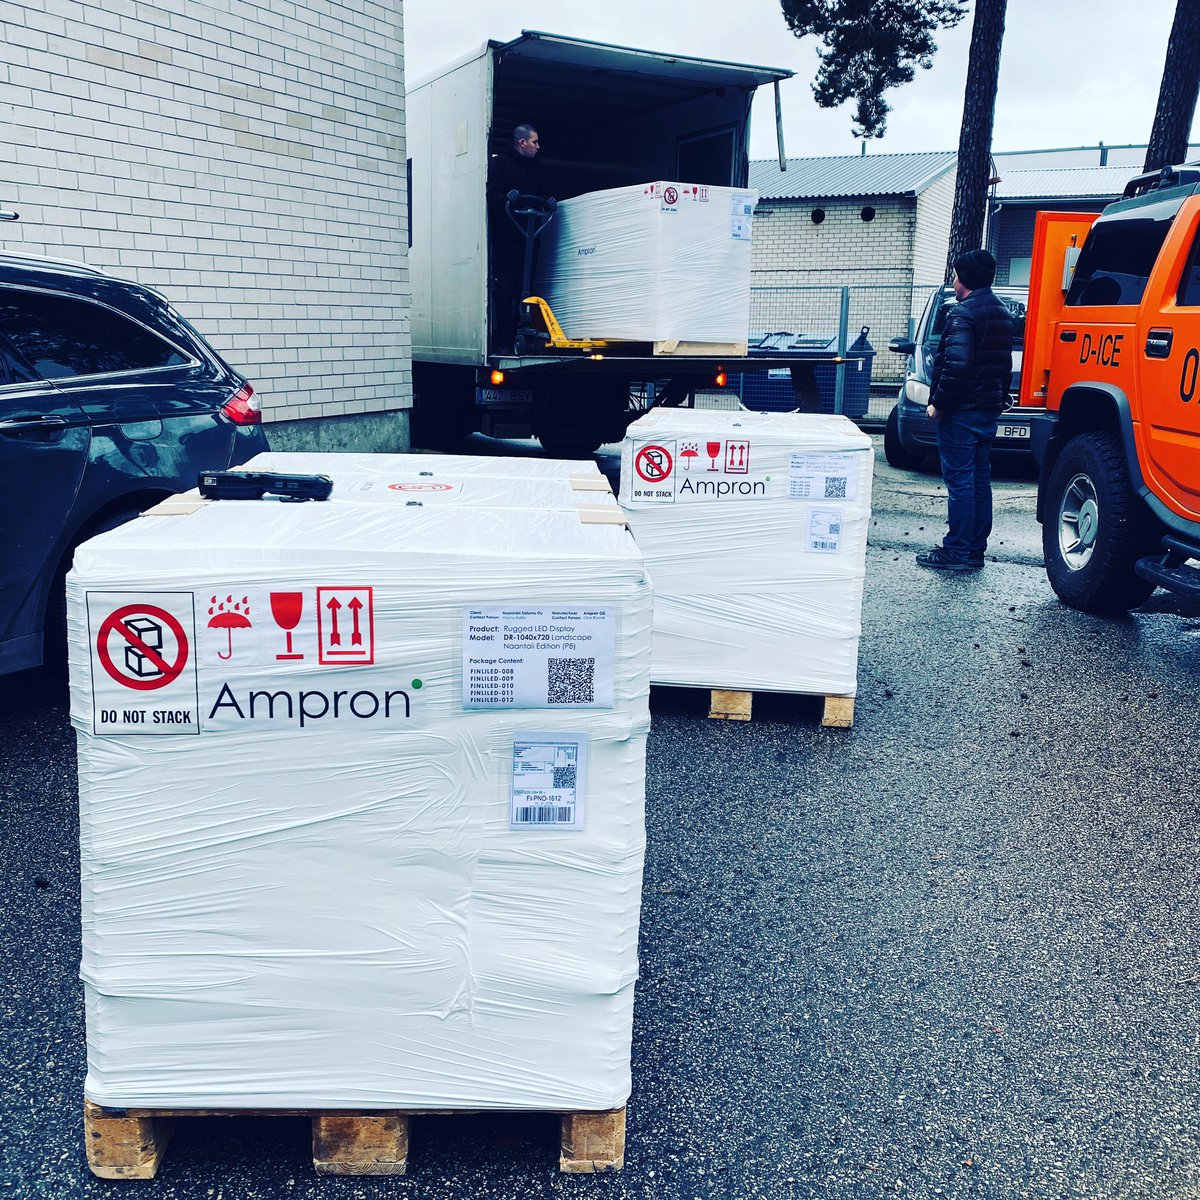 Another deliver for another port. Our worlds most modern LED electronic message boards for rough environment. . See the products and decide if they would suit your needs: https://ampron.eu/products/rugged-led-message-boards … . #ampron #port #portautomation #digitalguidance #madeinestonia pic.twitter.com/fkuSsizCJr